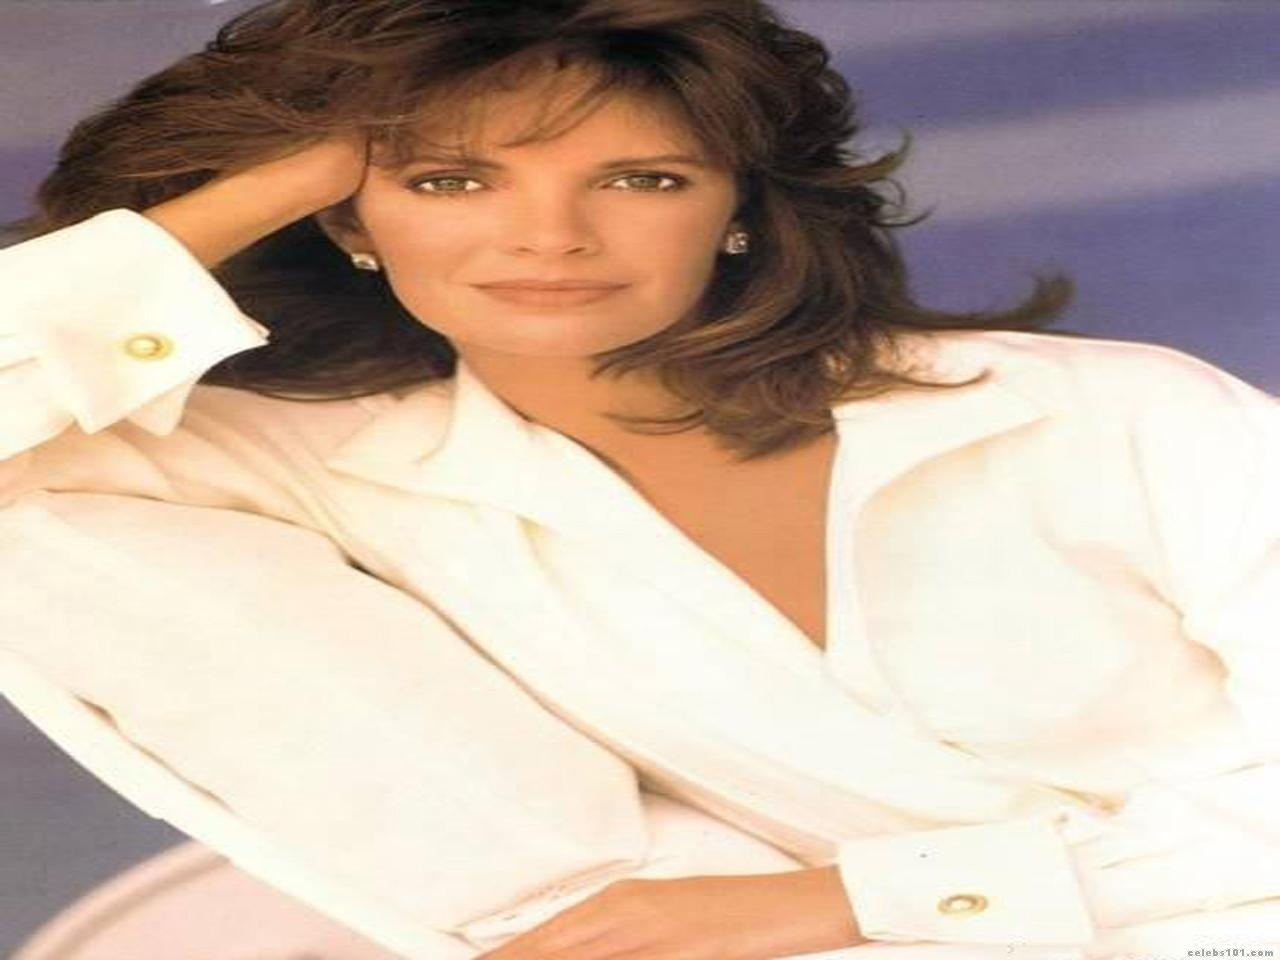 1280x960 - Jaclyn Smith Wallpapers 12